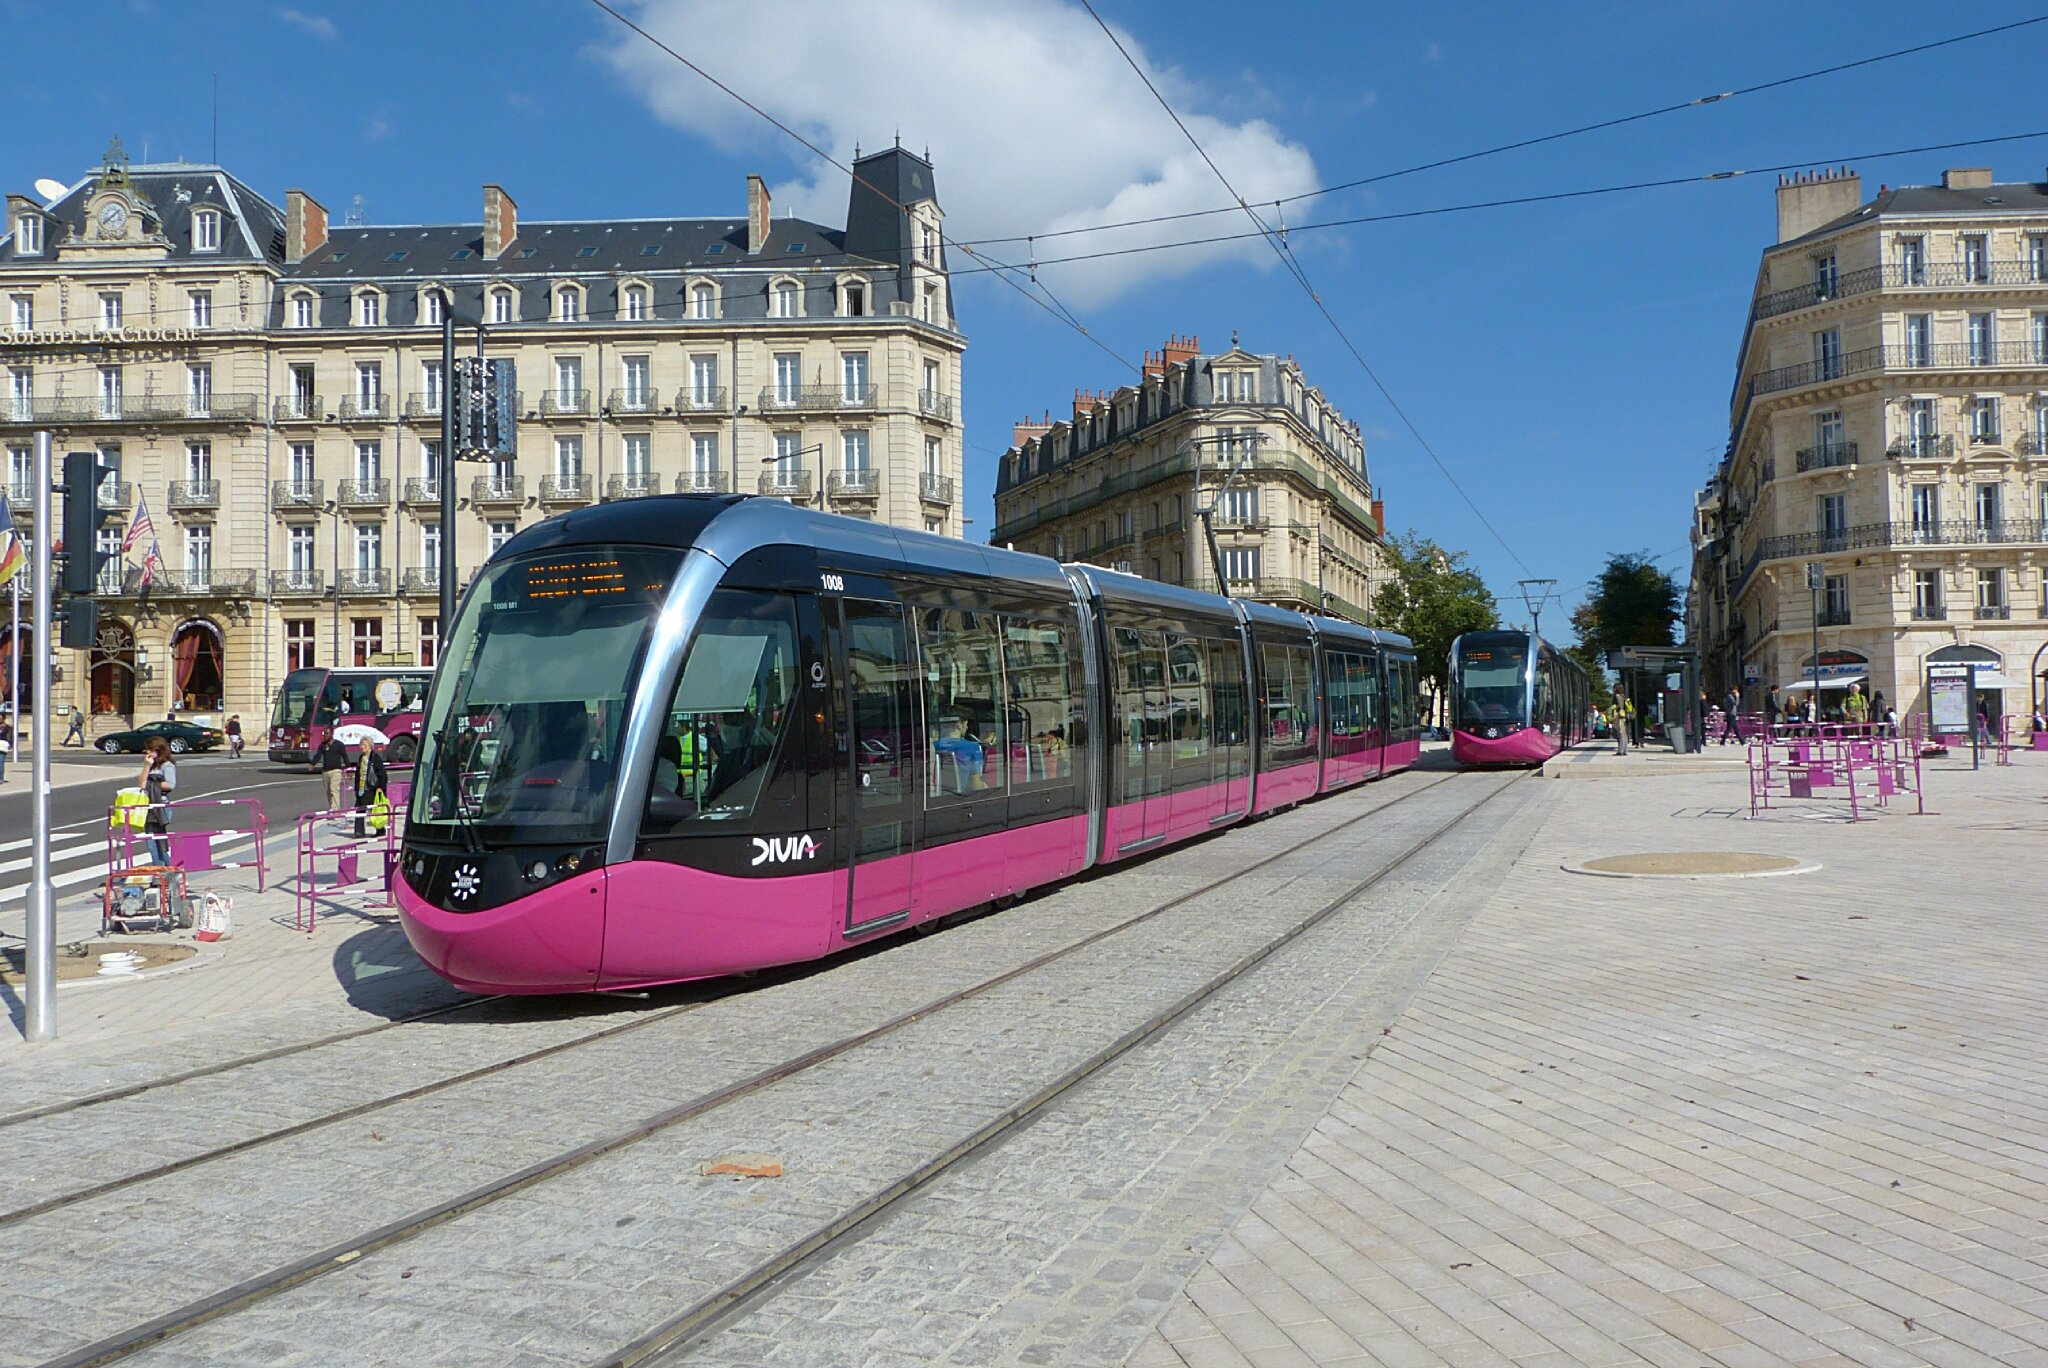 Divia: All the messages on Divia - transporturbain - Le ...